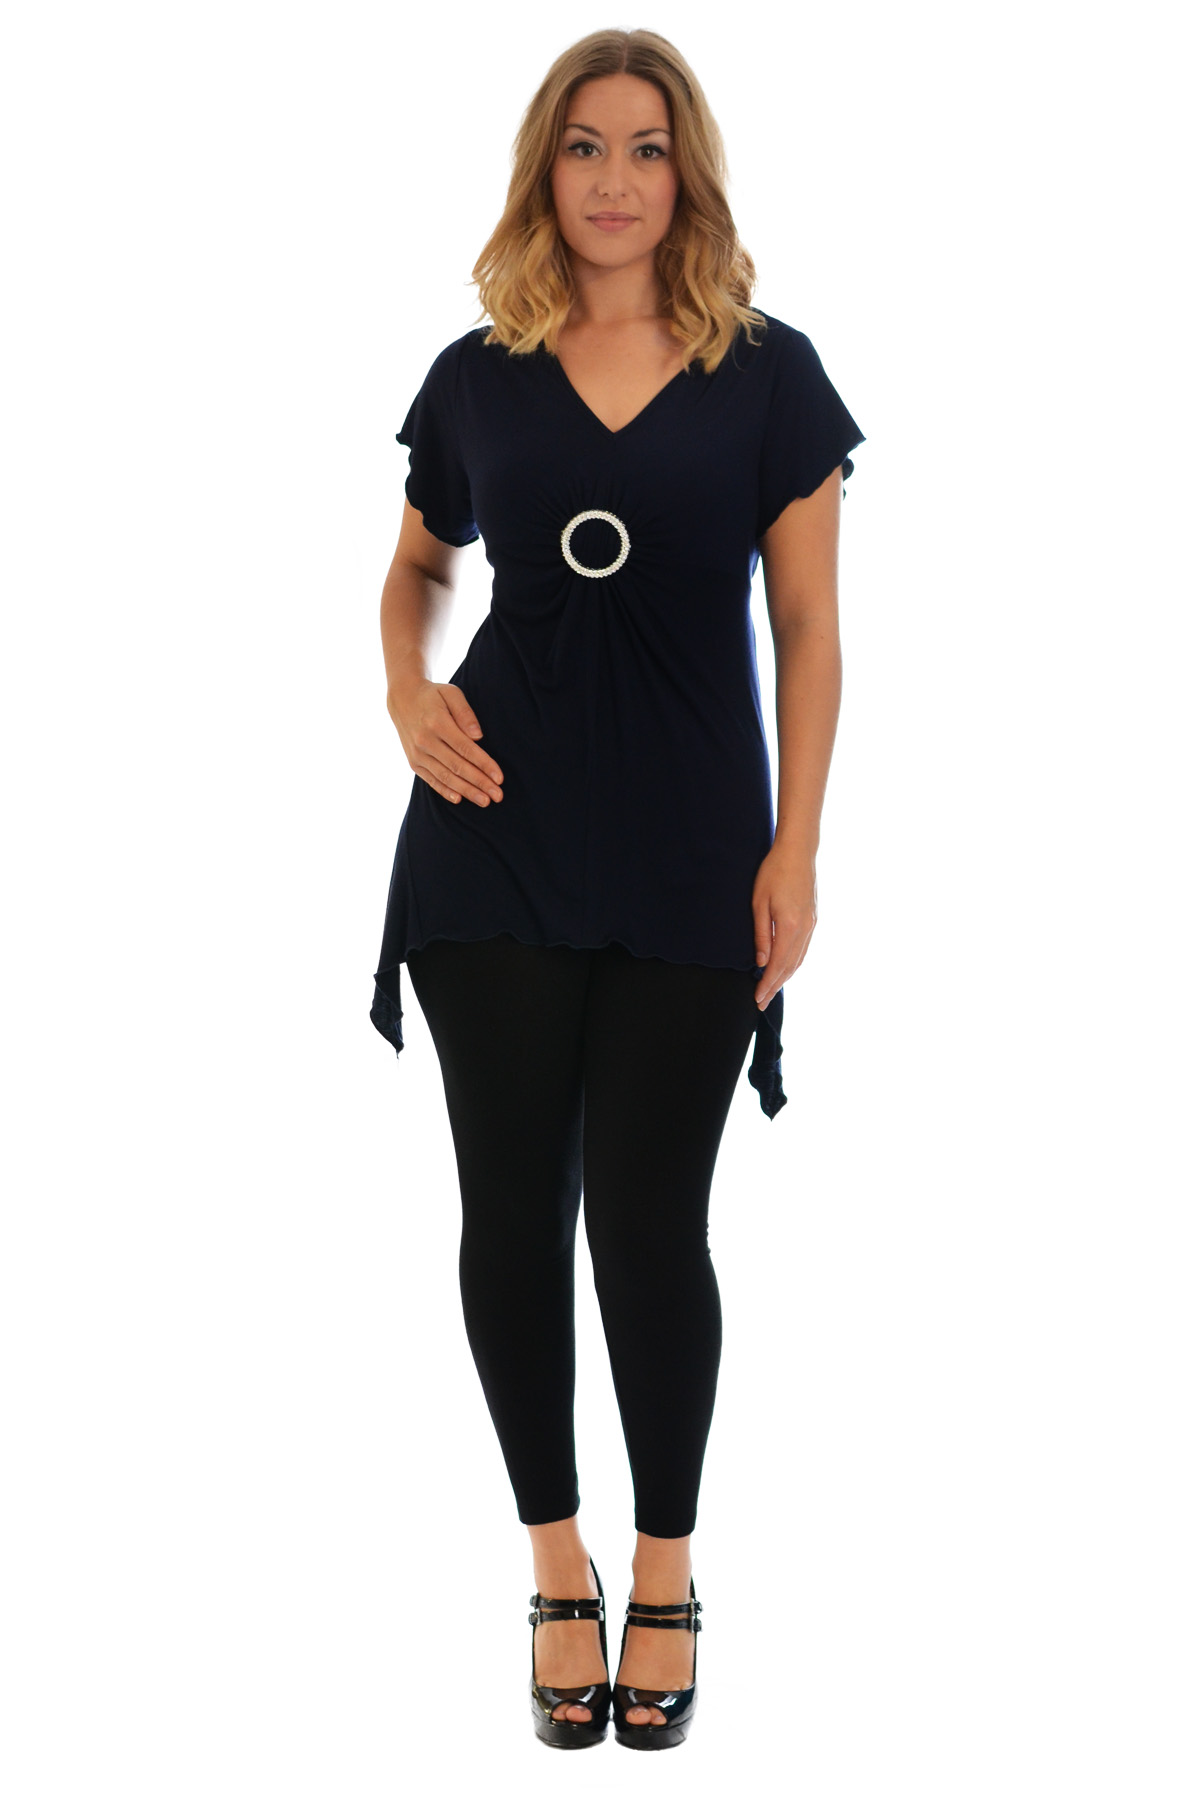 New-Womens-Plus-Size-Top-Ladies-T-Shirt-Buckle-Stud-A-Line-Asymmetric-Nouvelle thumbnail 44